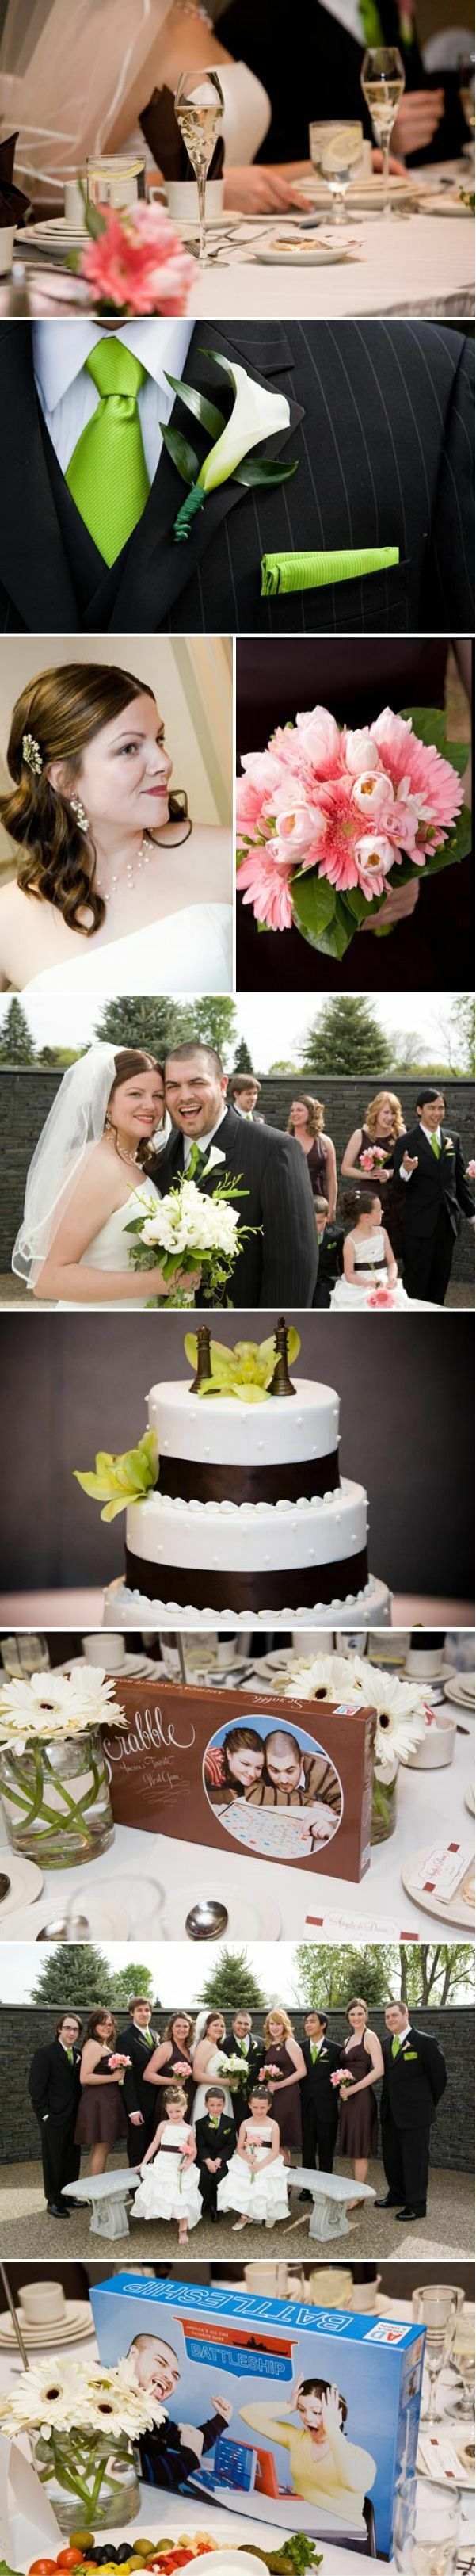 Boxes To Send Wedding Cake To People